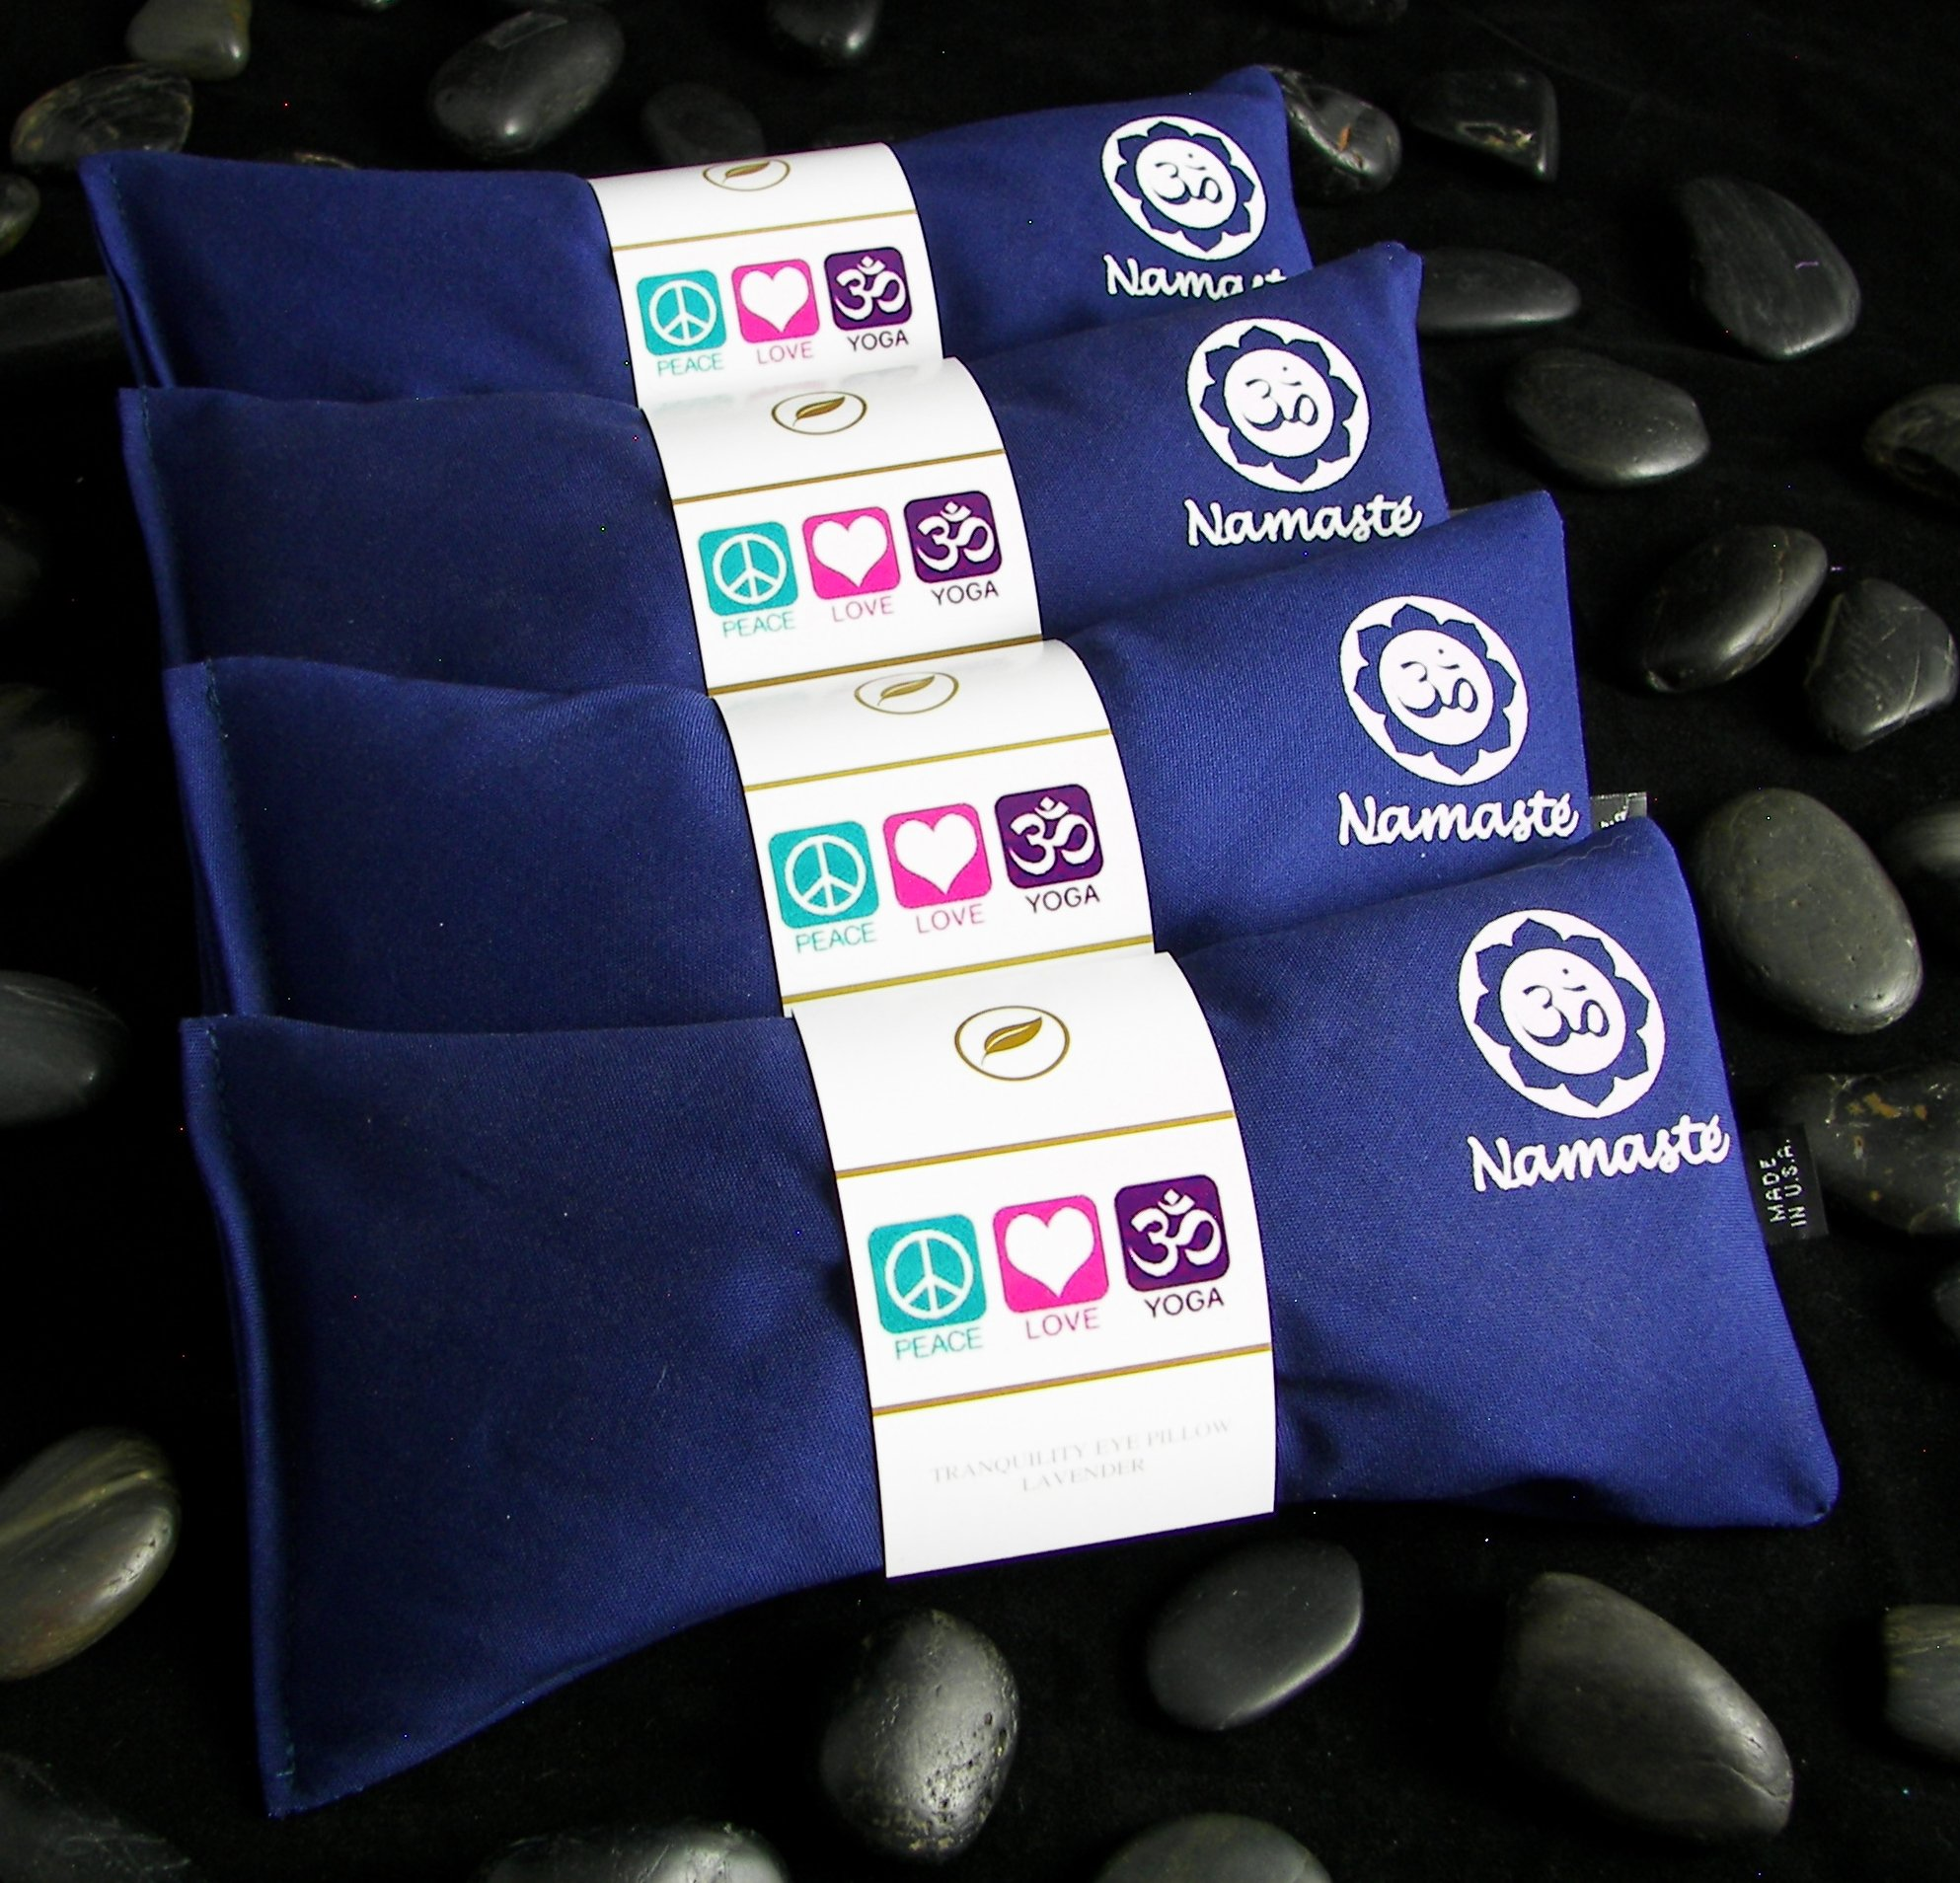 Namaste Yoga Lavender Eye Pillow - Navy - Set of 4